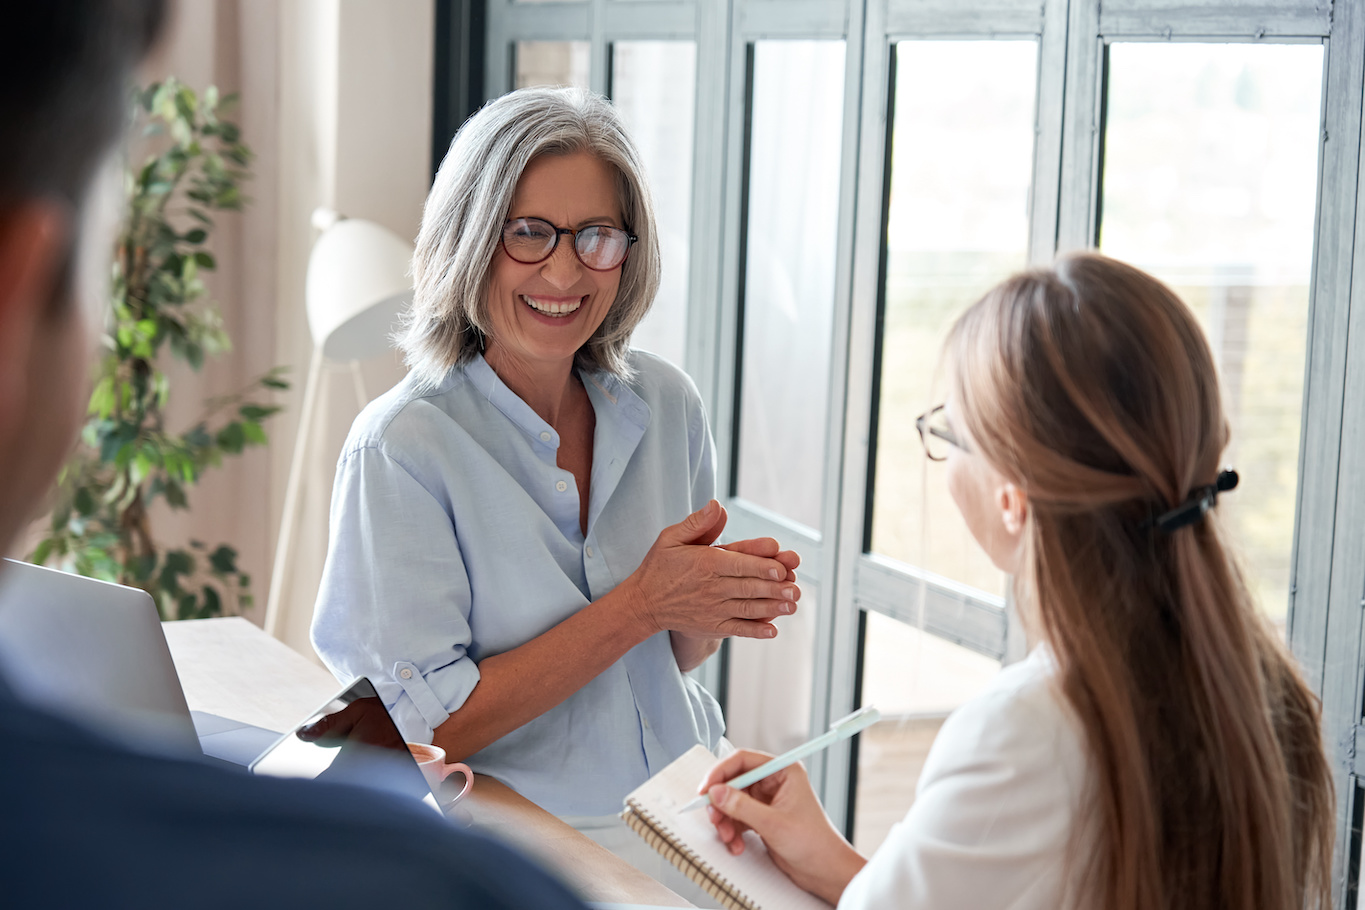 Summer internship: Old woman laughing and talking to a young woman